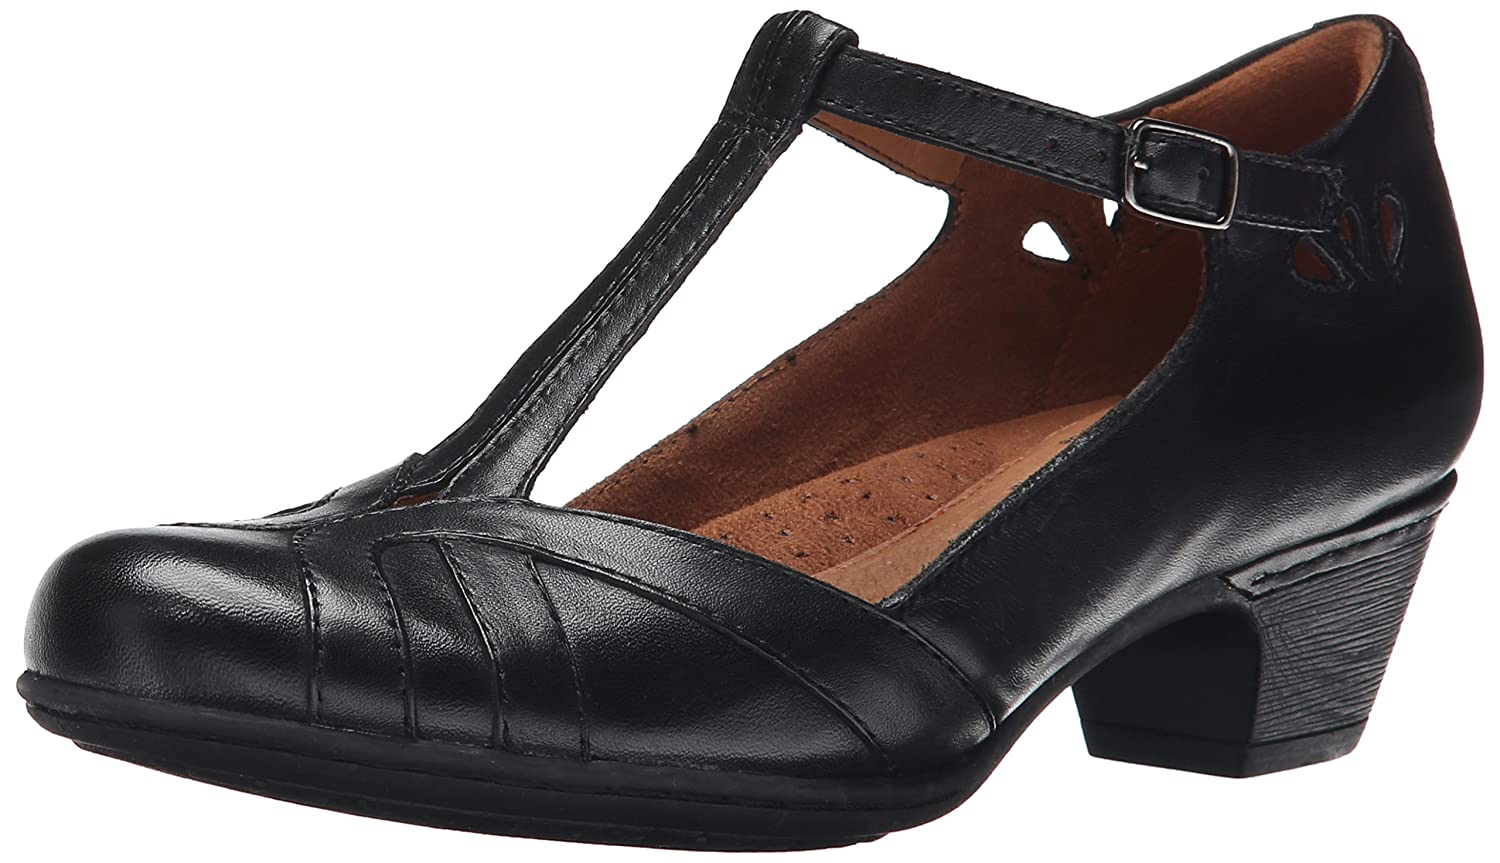 Cobb Hill Rockport Women's Angelina Dress Pump B00SJUPPVW 6 W US|Black